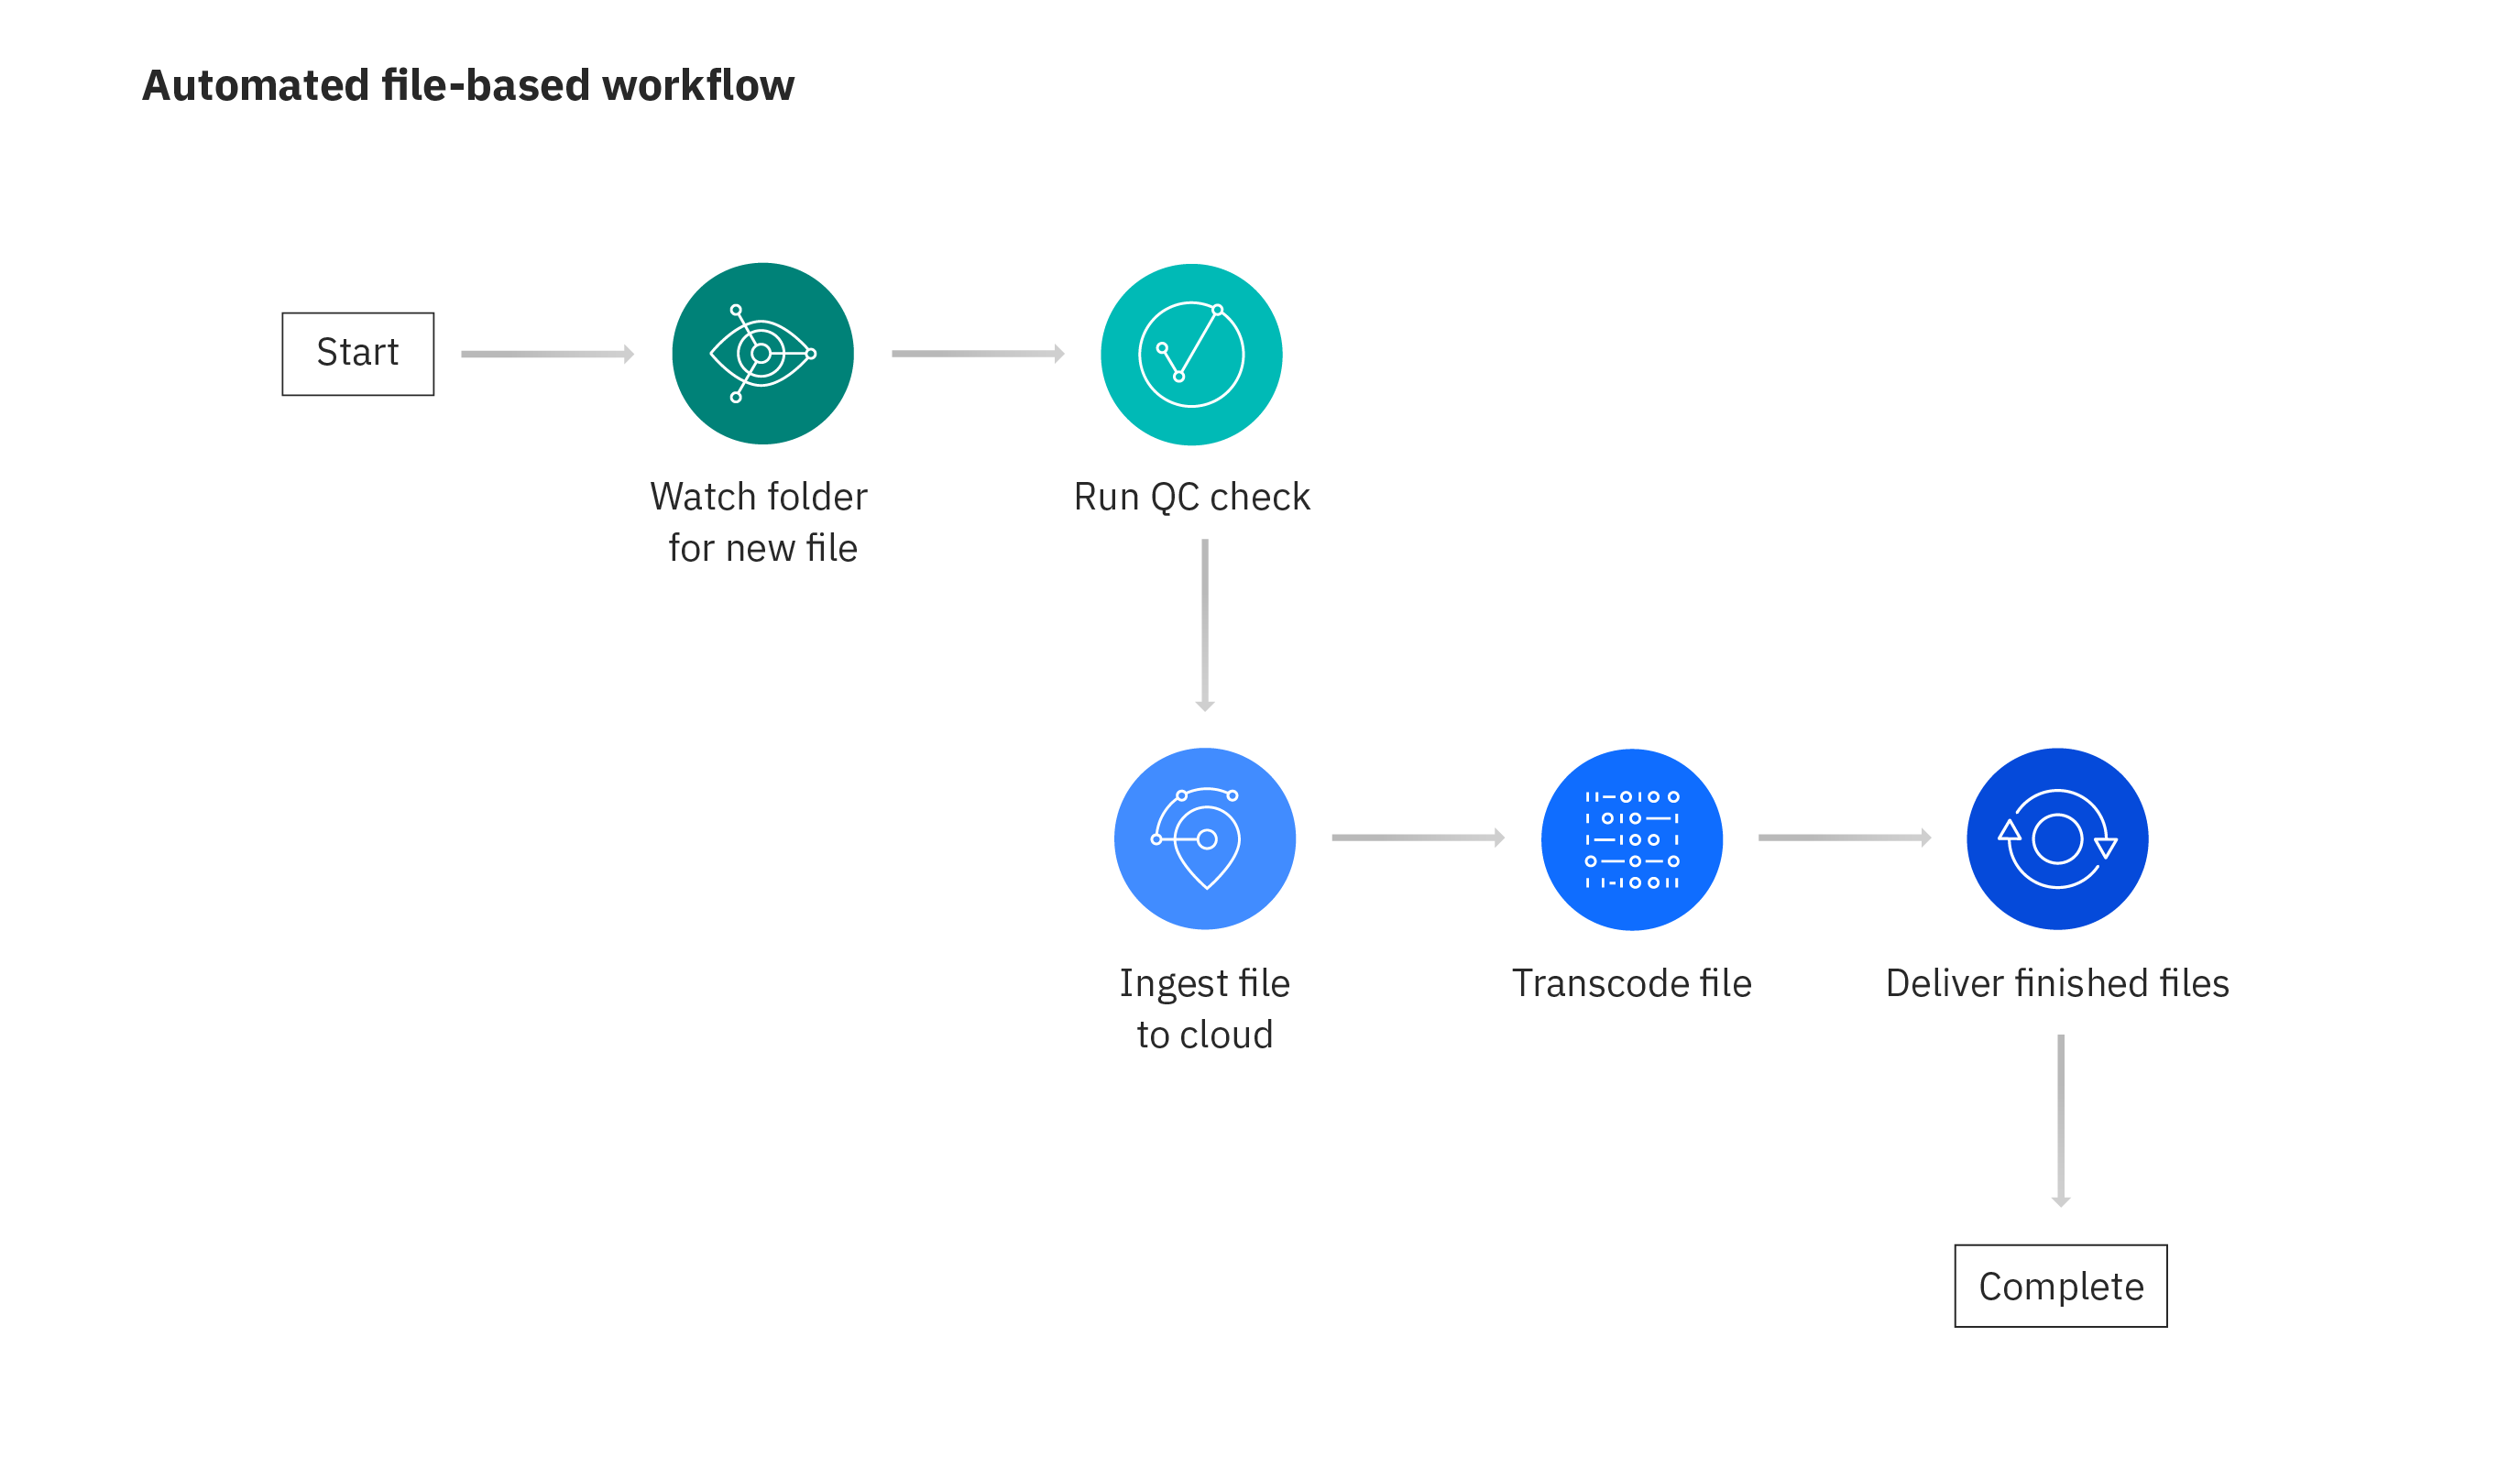 Diagram showing how Aspera helps automate file-based workflows